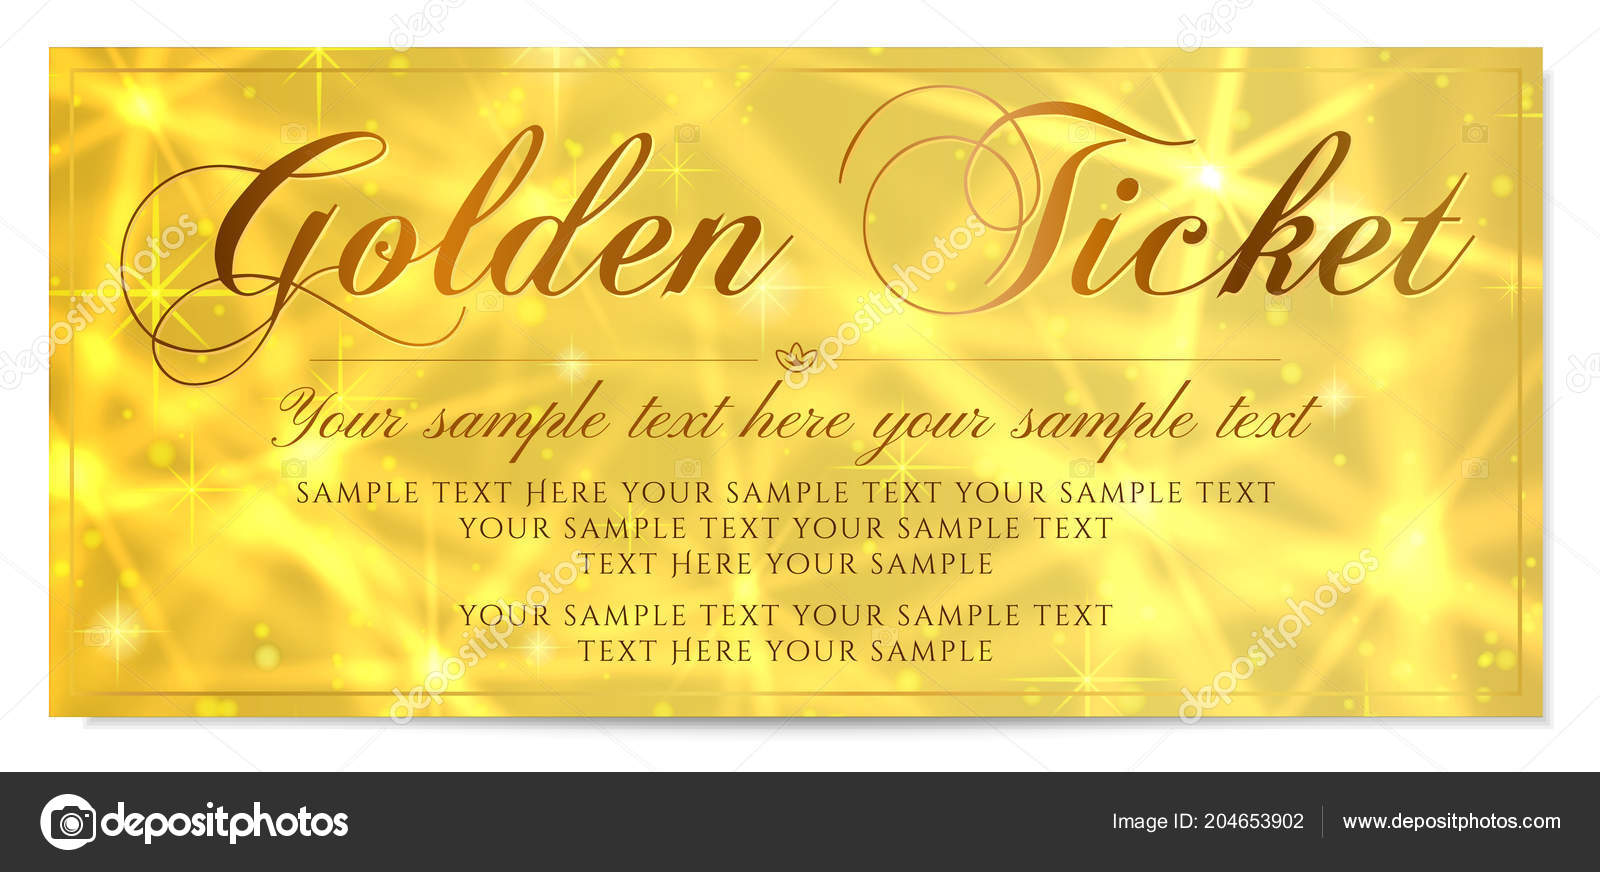 Golden Ticket Gift Certificate Gift Voucher Vector Template Design ...